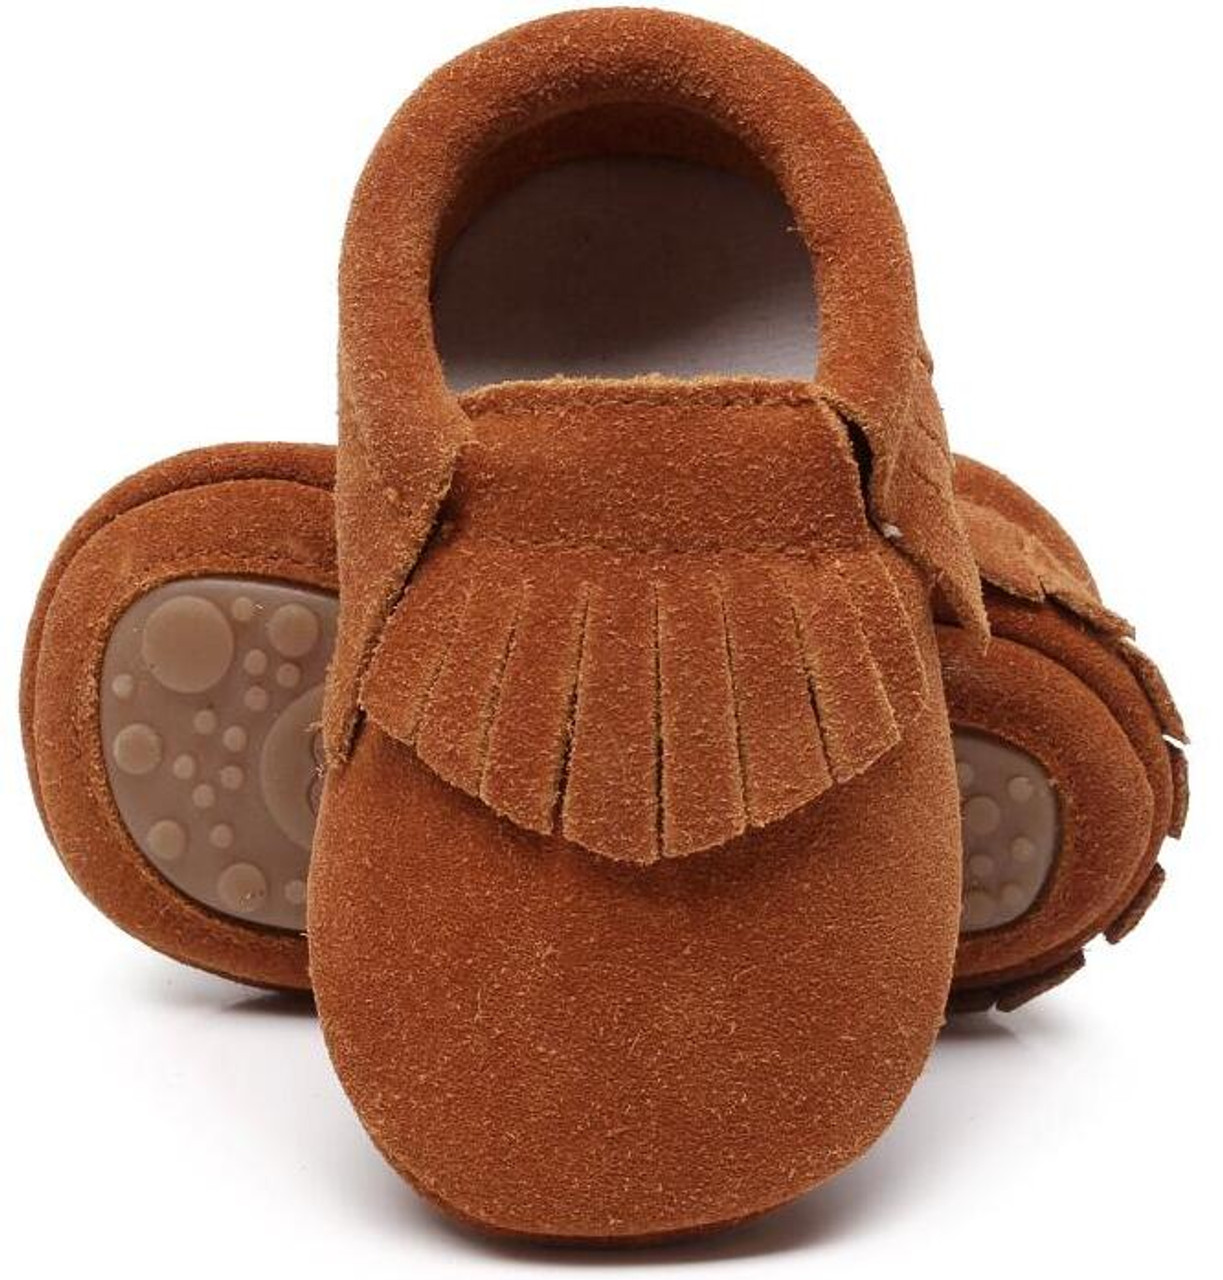 28941a0c5033 New hot sell genuine suede leather Baby moccasins shoes fringe solid hard  Rubber sole baby shoes ...